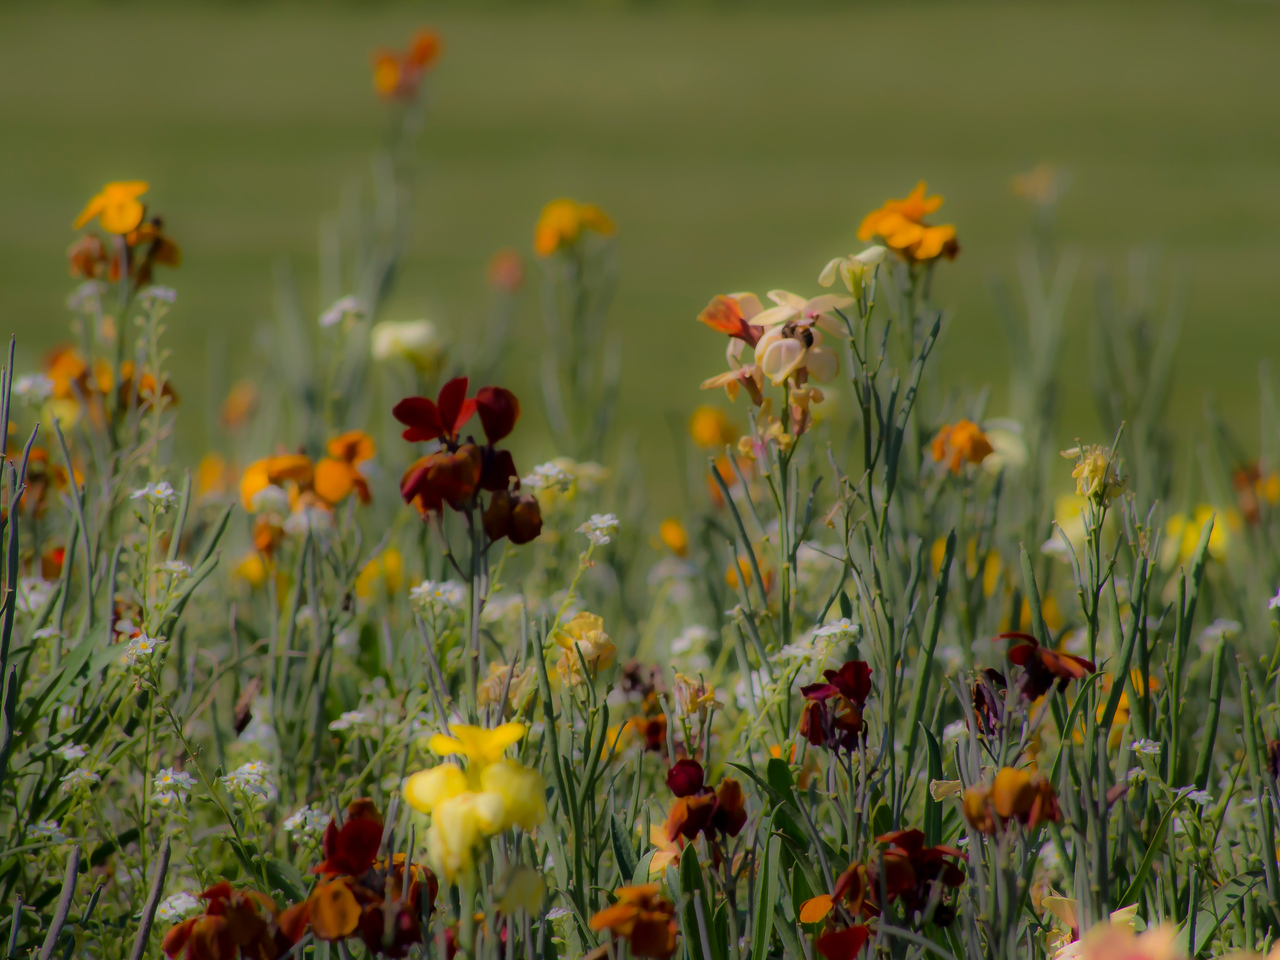 Wildflowers at Luxembourg Gardens Paris